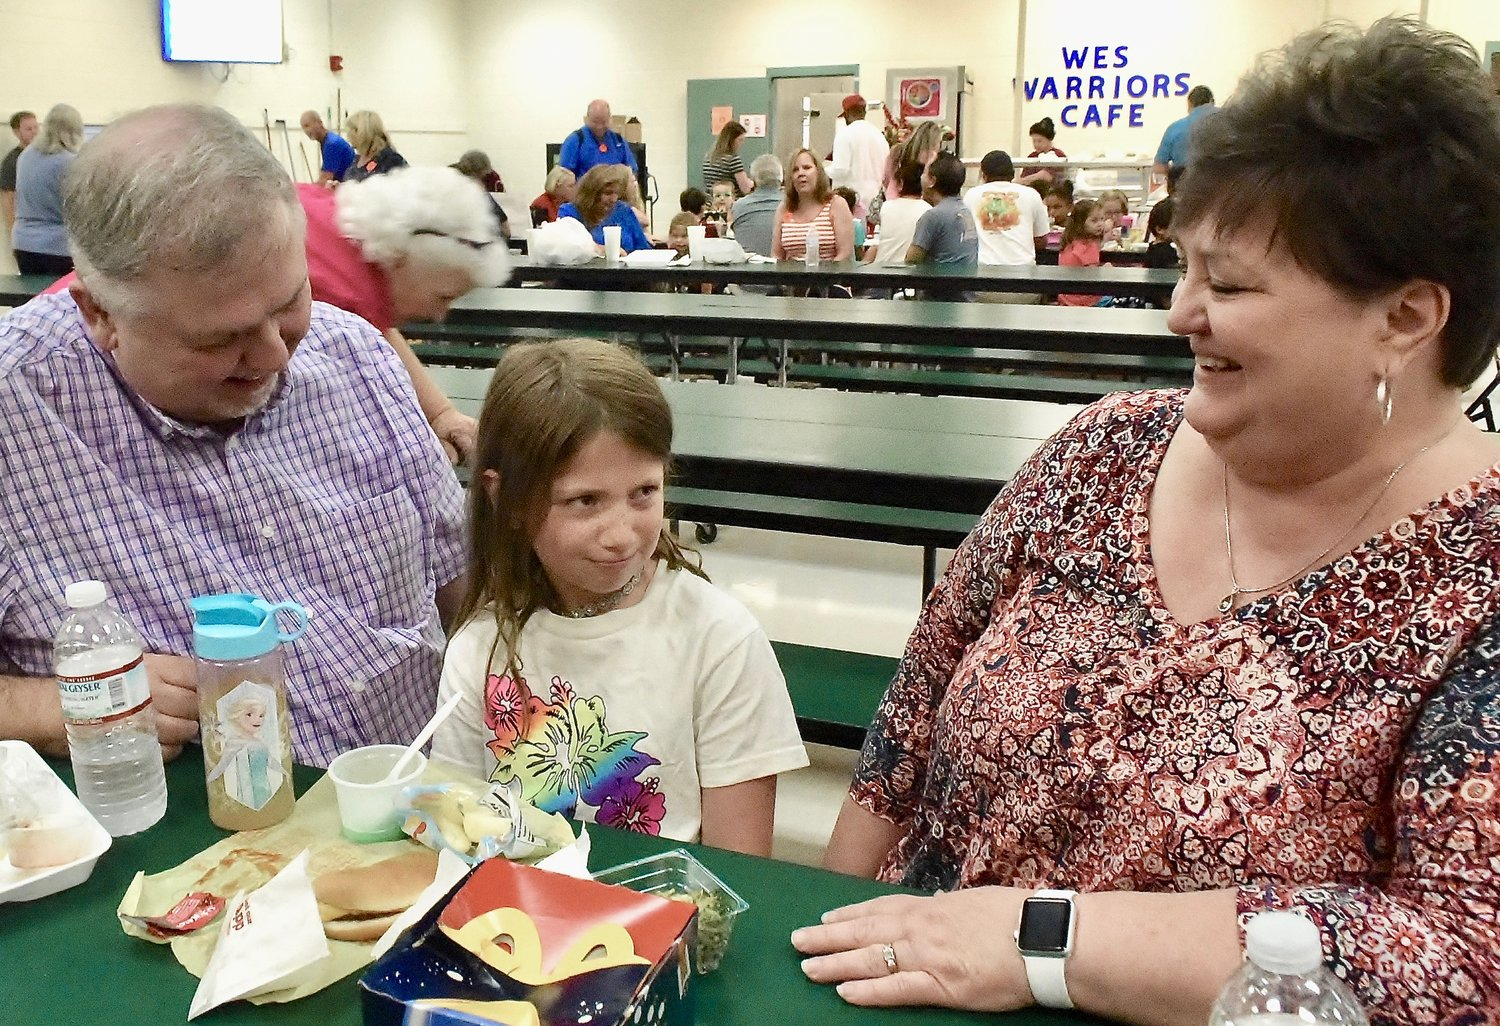 Rick and Debra Herron drove down from Knoxville, Tennessee, Friday to have lunch with their granddaughter, first-grader Kendall McDaniel, 6, at White Elementary School in celebration of Grandparents Day today.